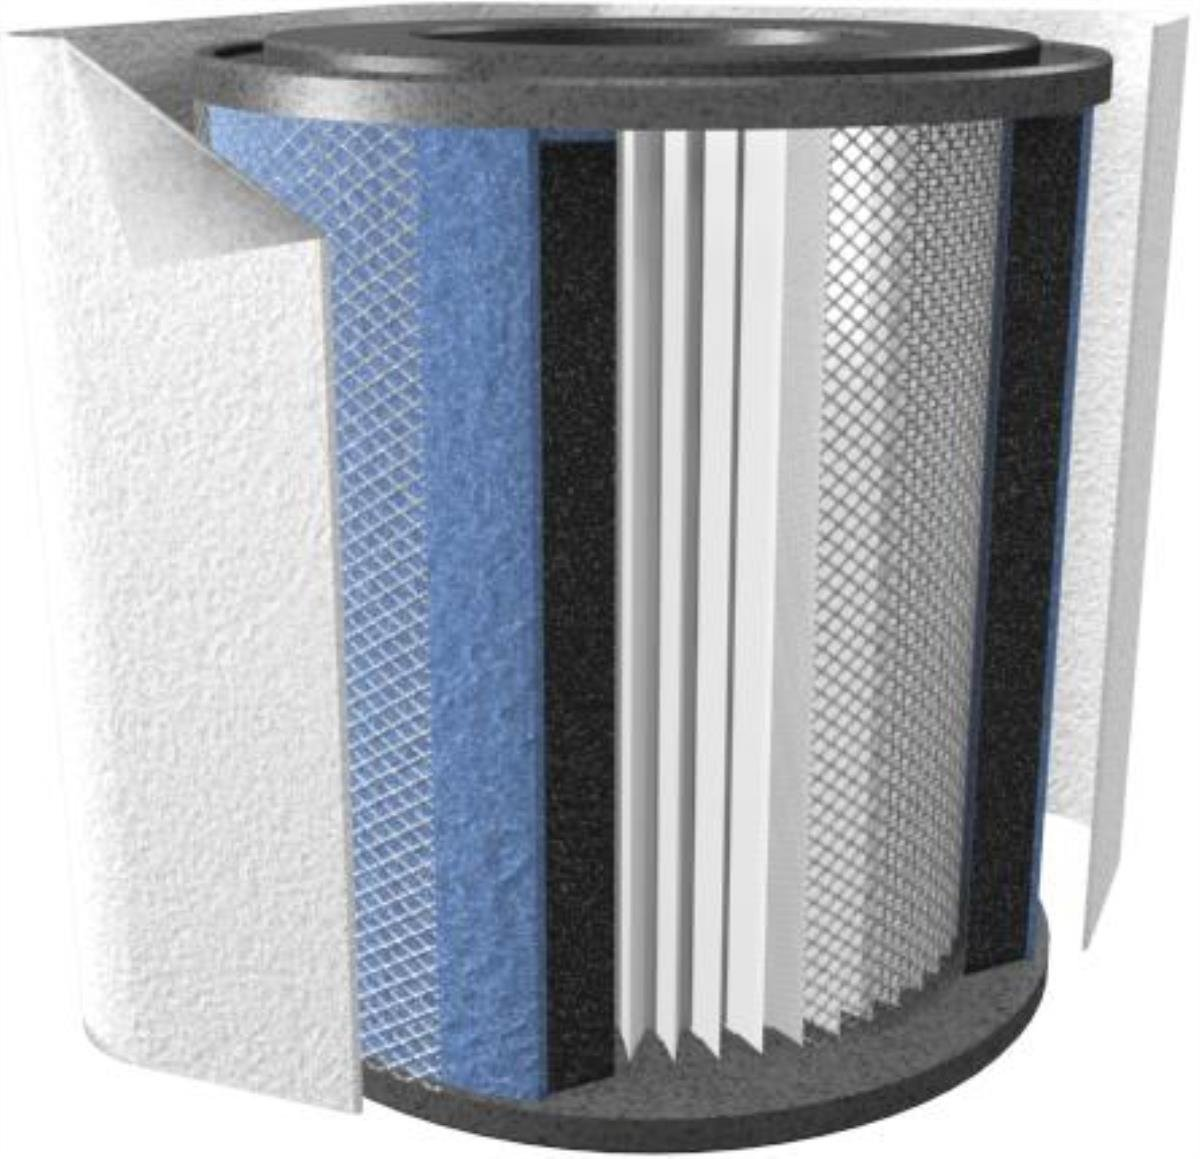 Amazon.com: Austin Air HealthMate 400 Replacement Filter for Air ...